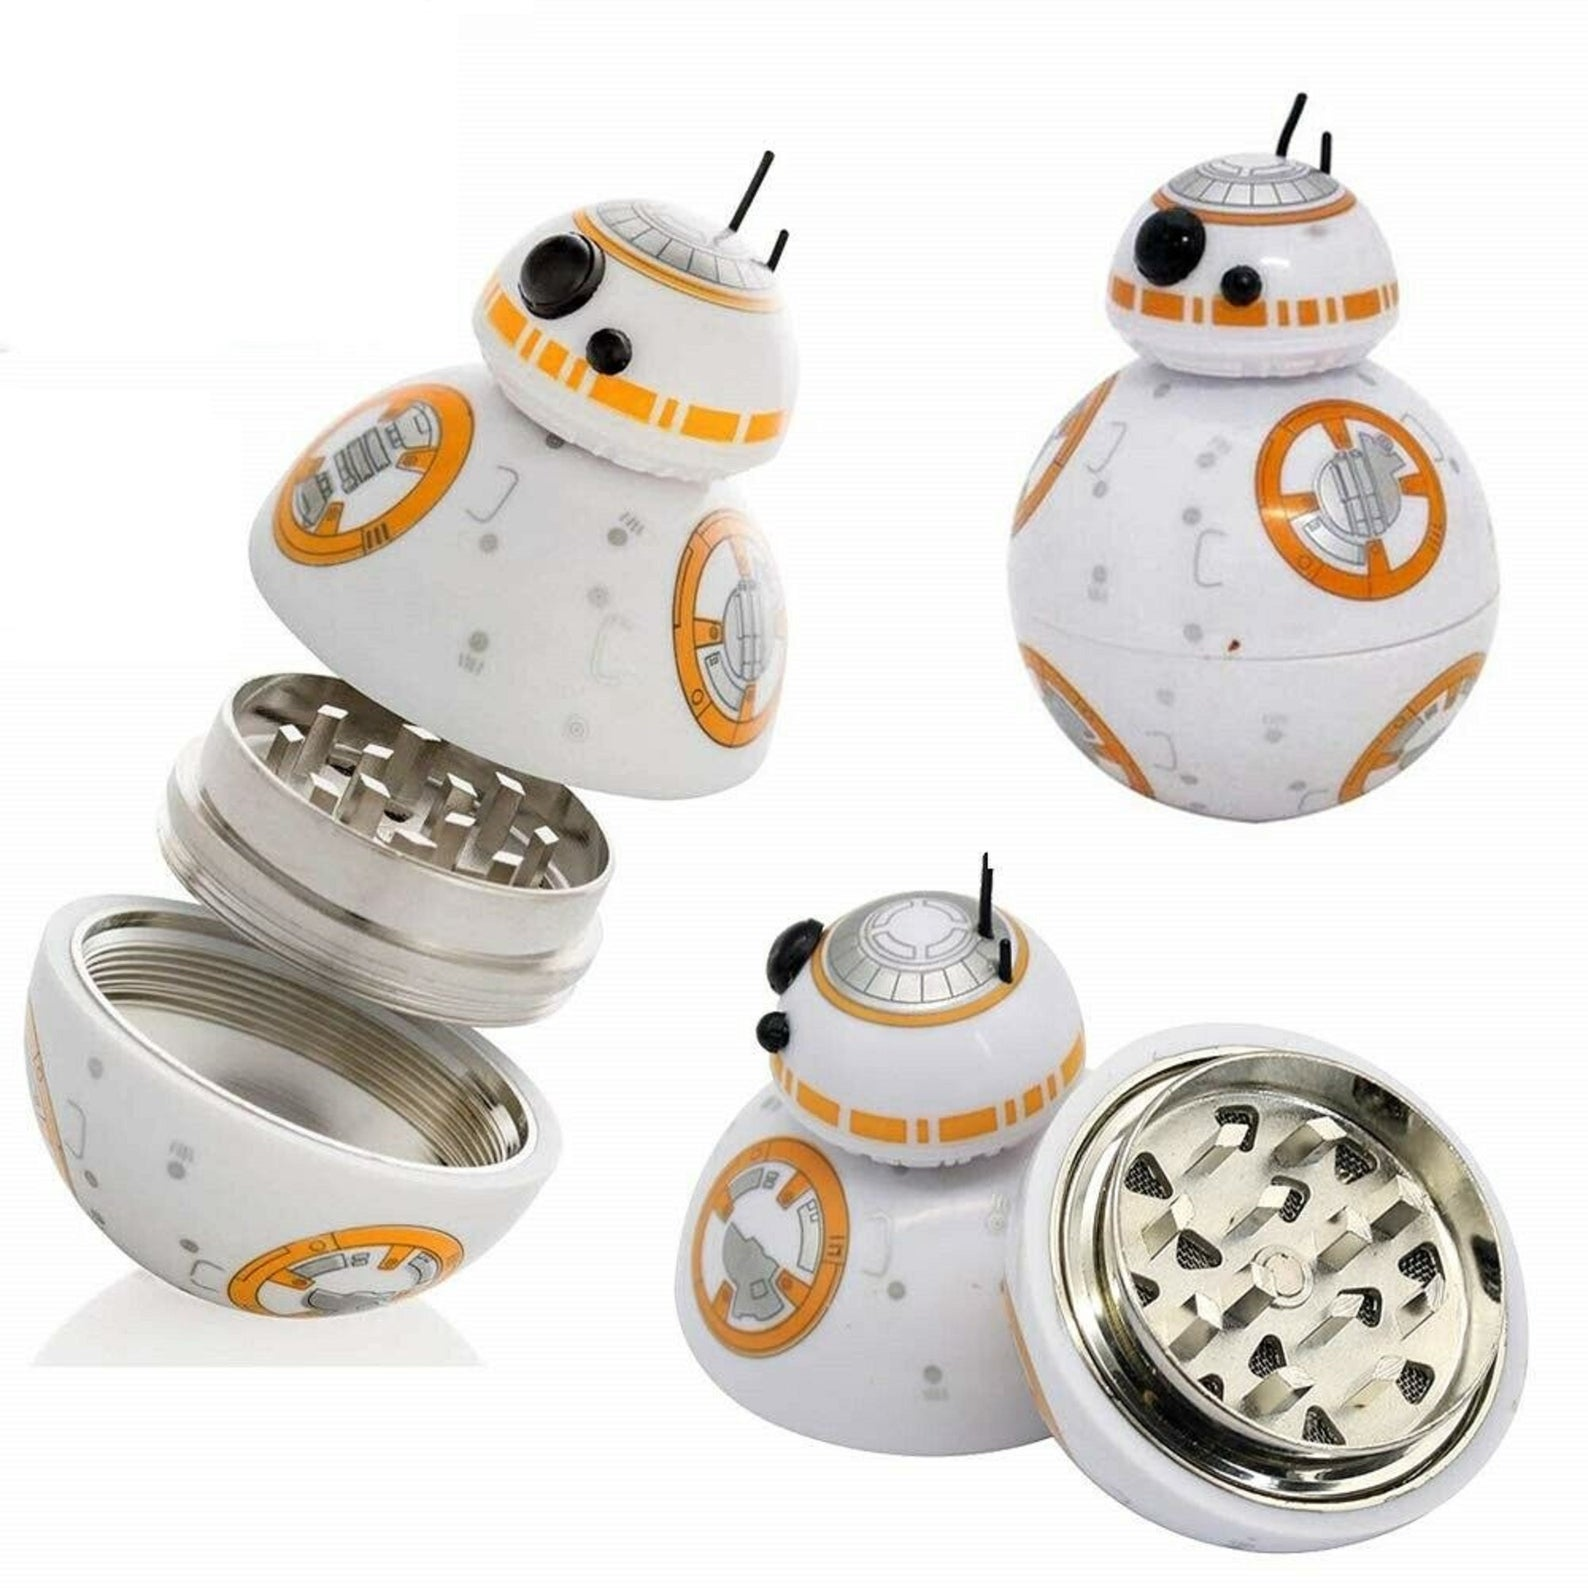 [Image description: three image view of a grinder shaped as BB-8]